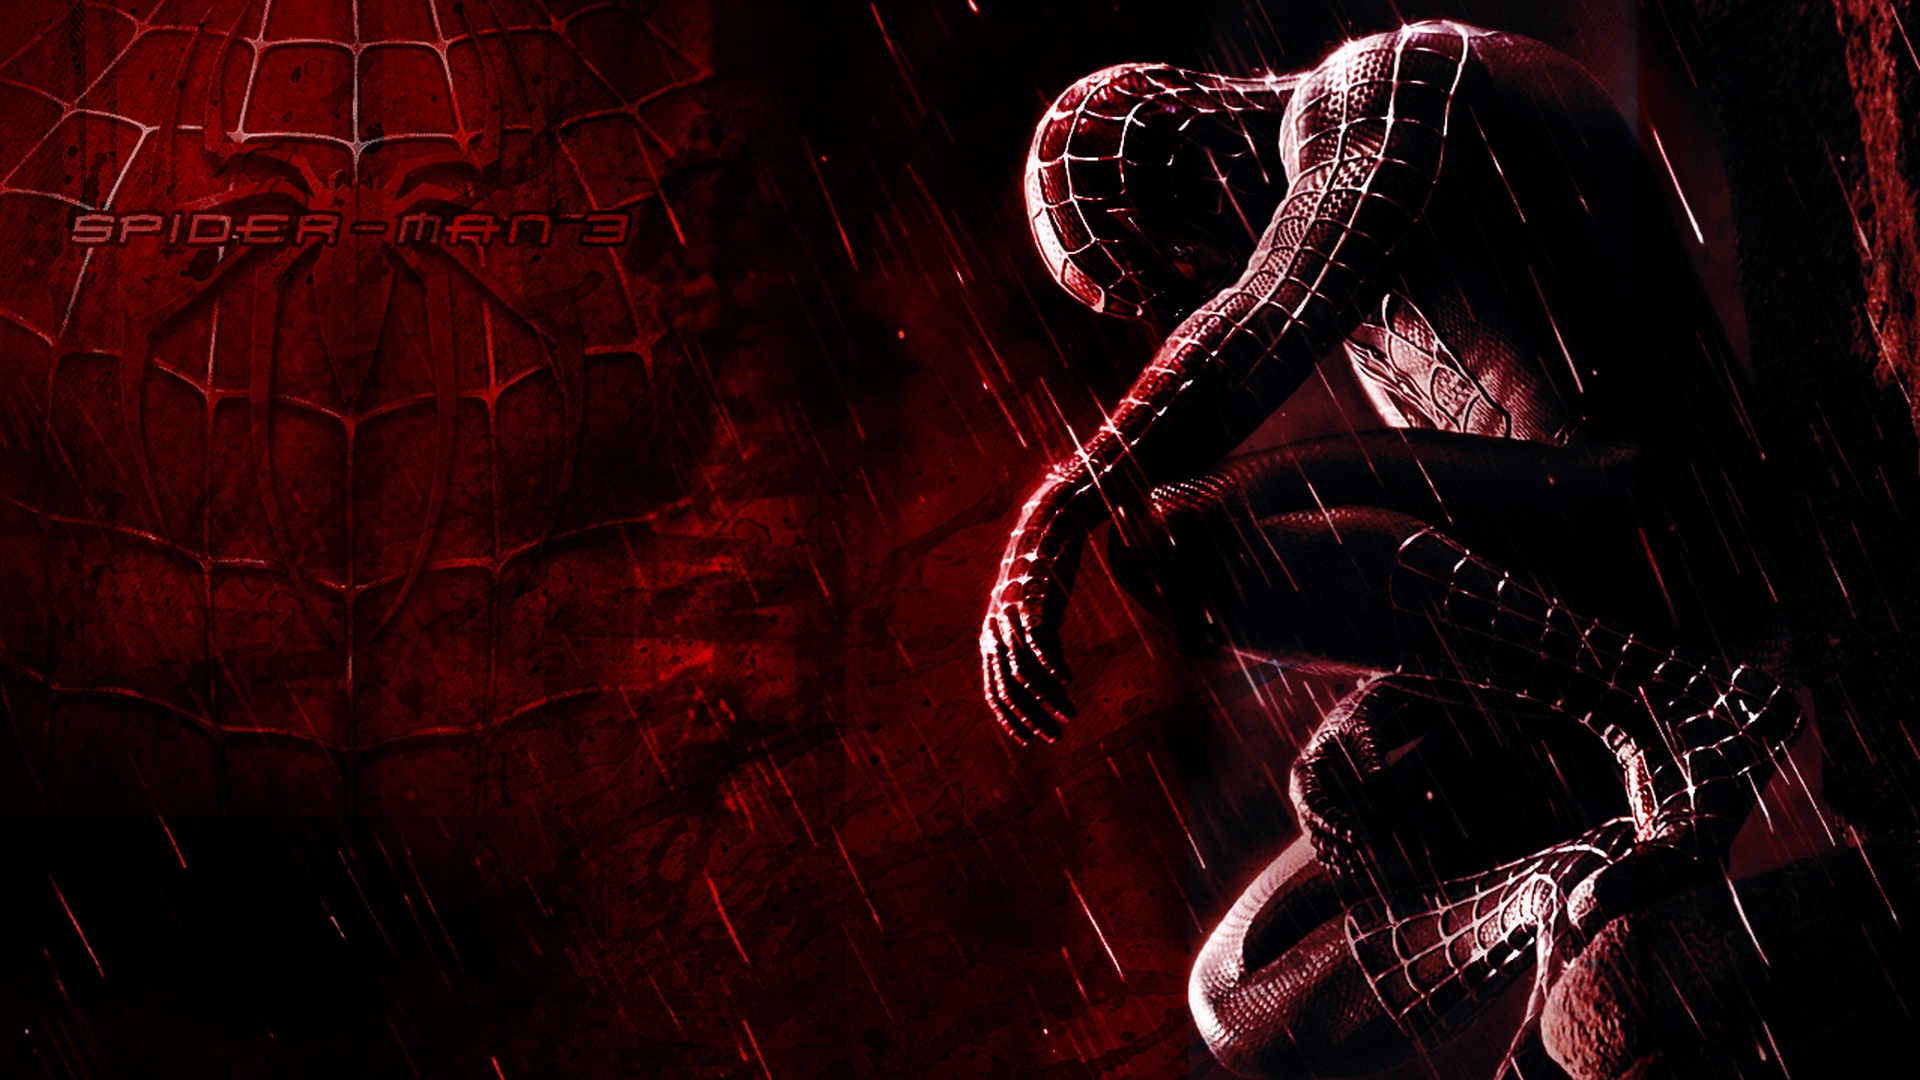 Spider man wallpapers pictures images - Image spiderman ...